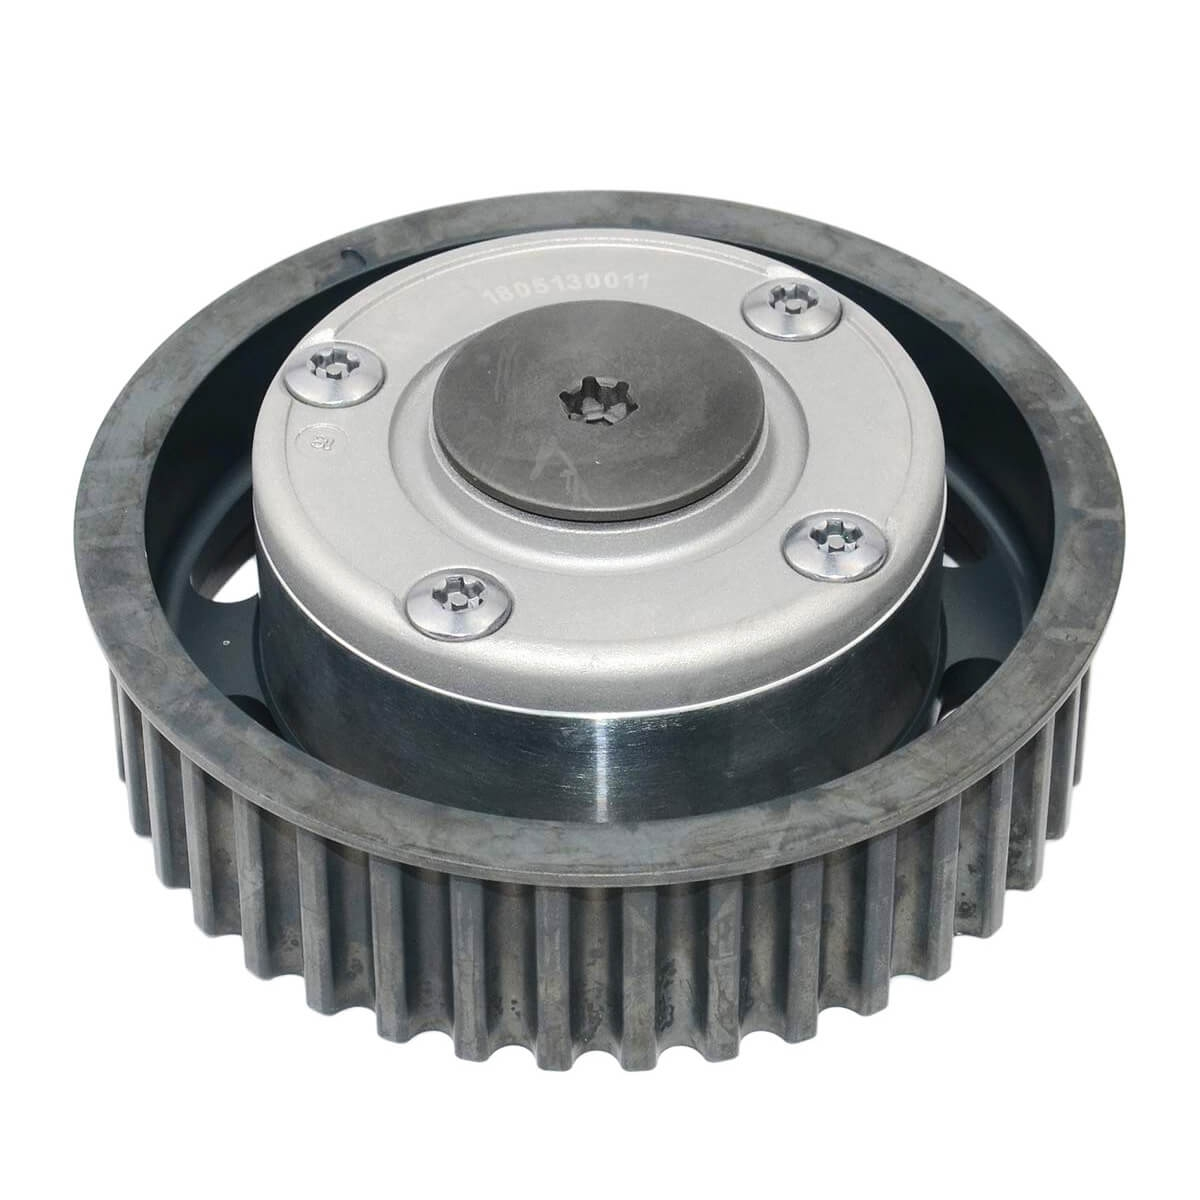 AUDI A2 Cam Dephaser Pulley